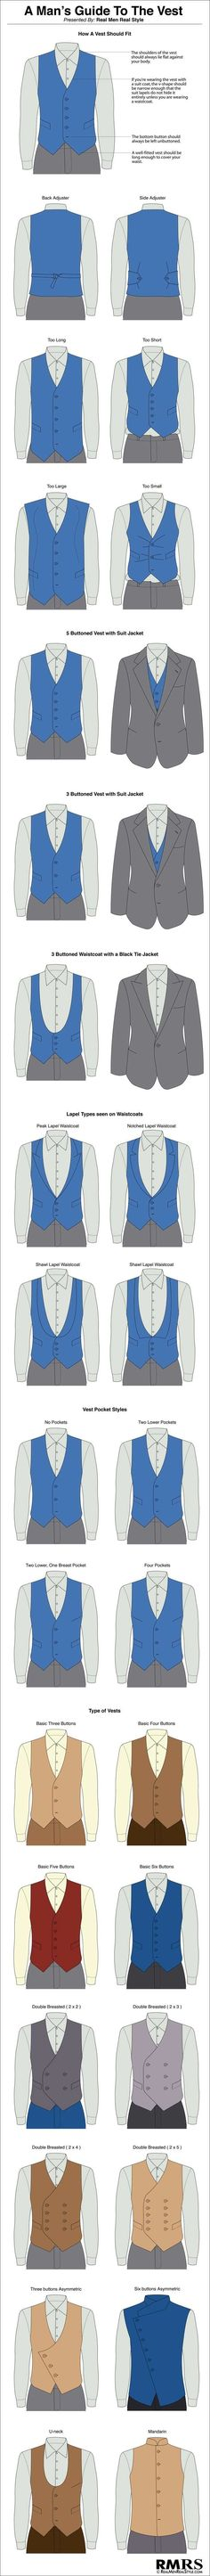 A Man's Guide To Vests